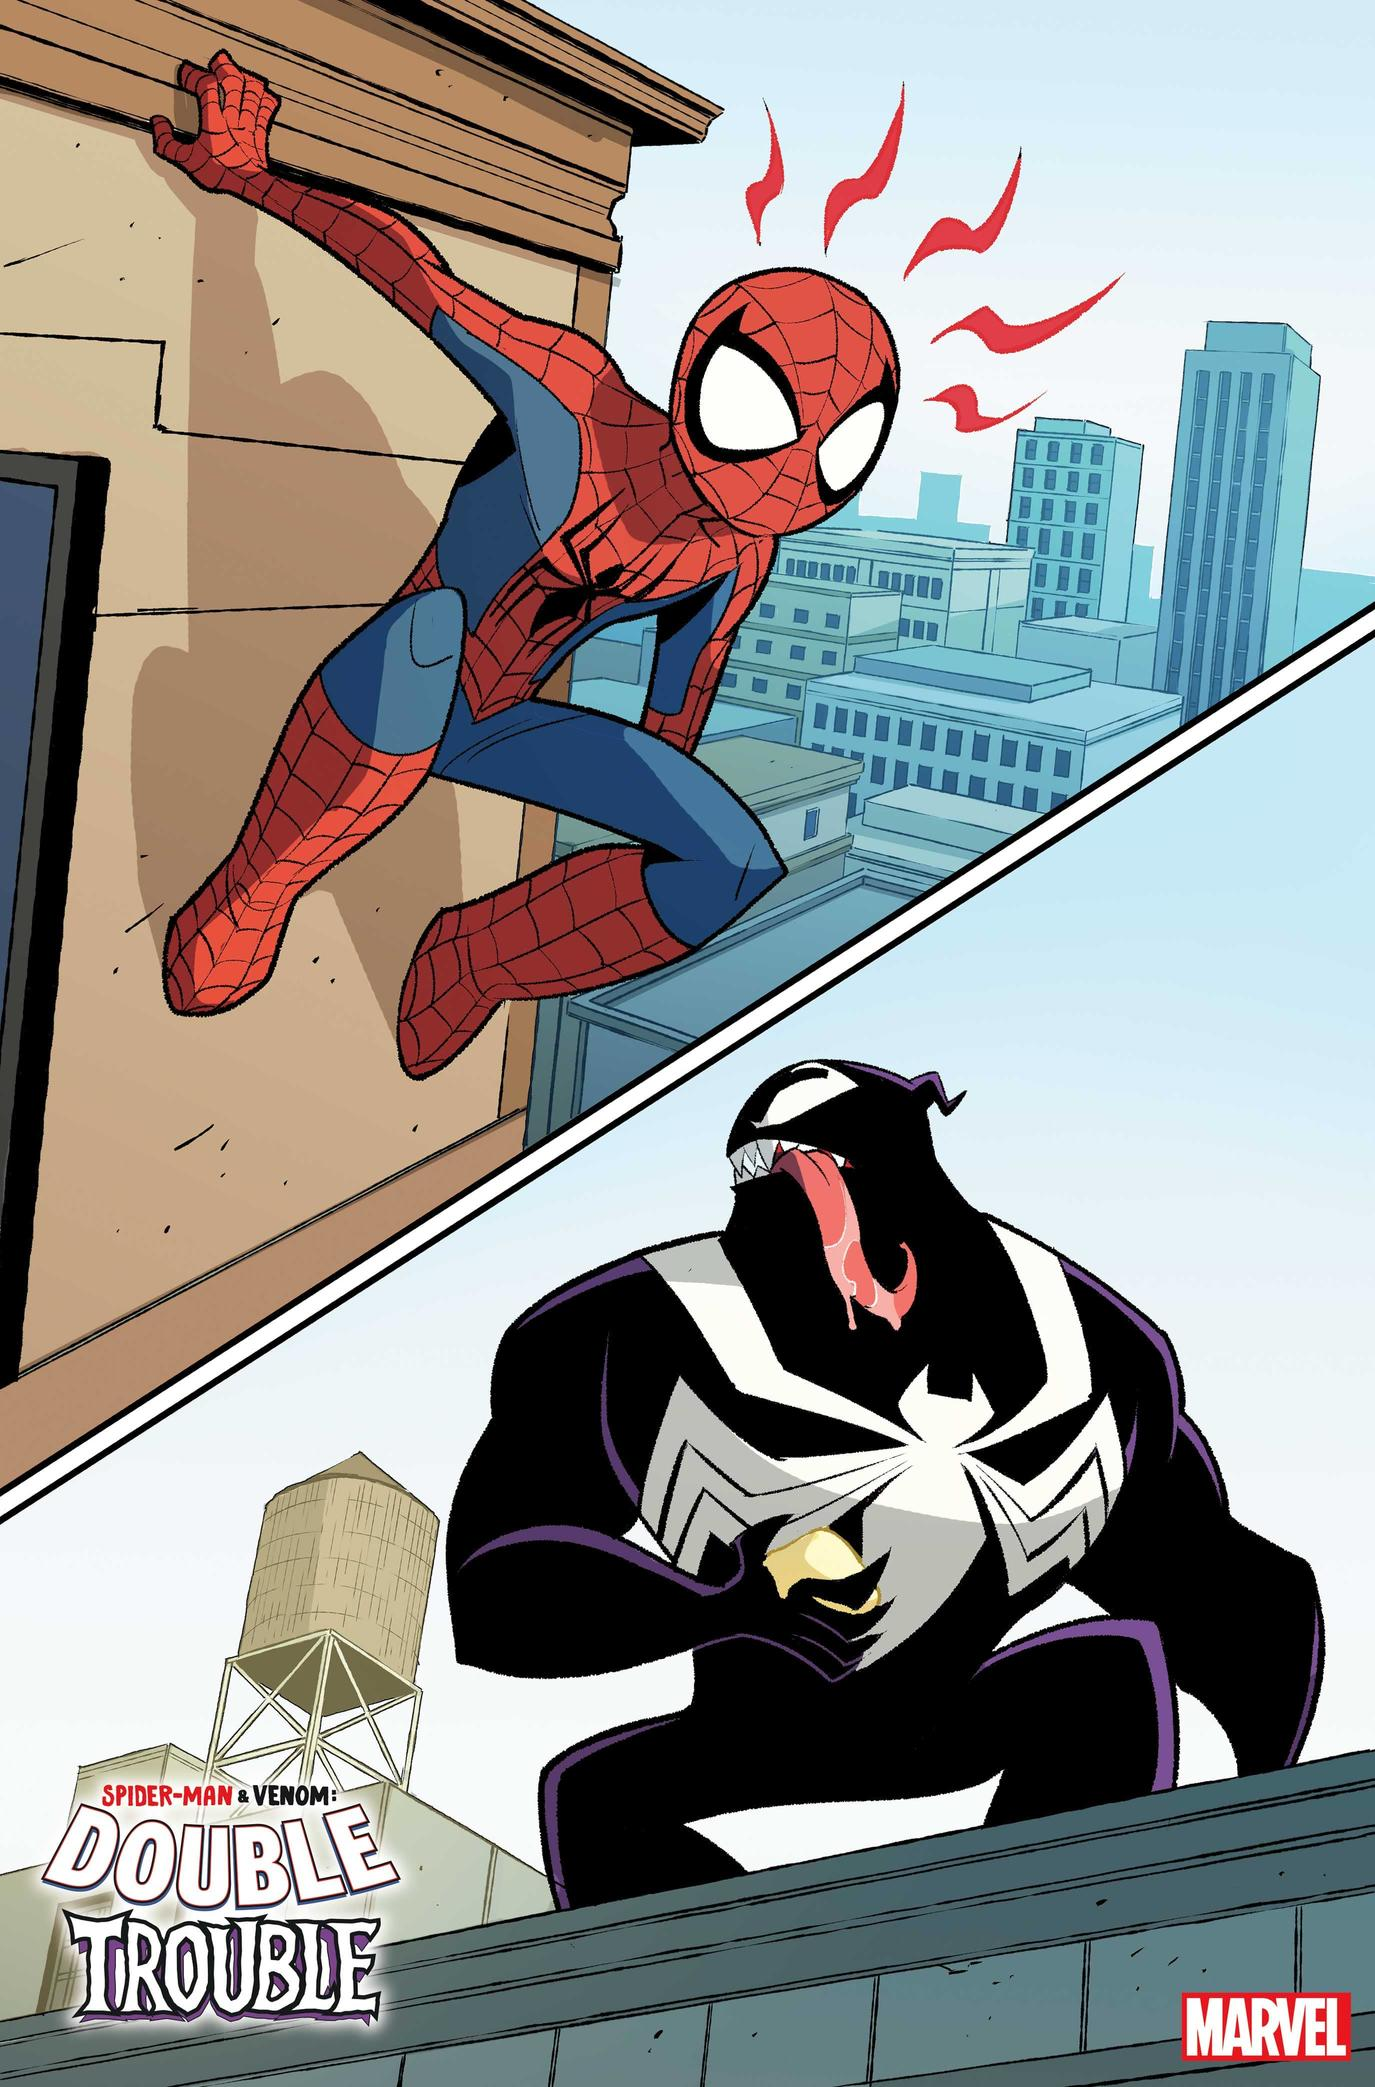 SPIDER-MAN & VENOM: DOUBLE TROUBLE #1